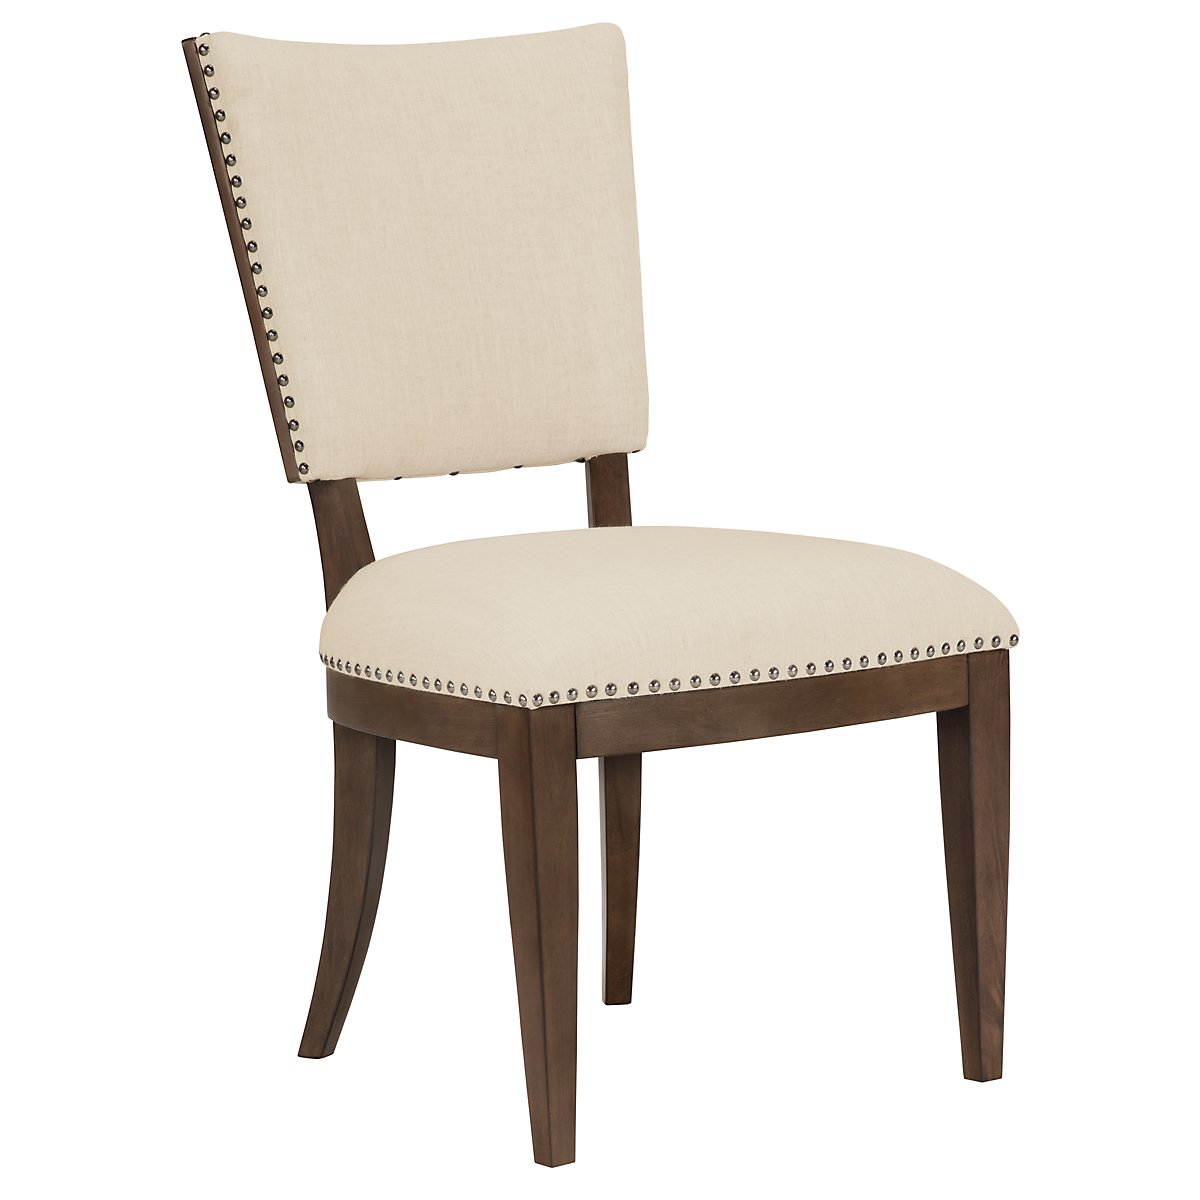 Preston Mid Tone Wood Upholstered Side Chair